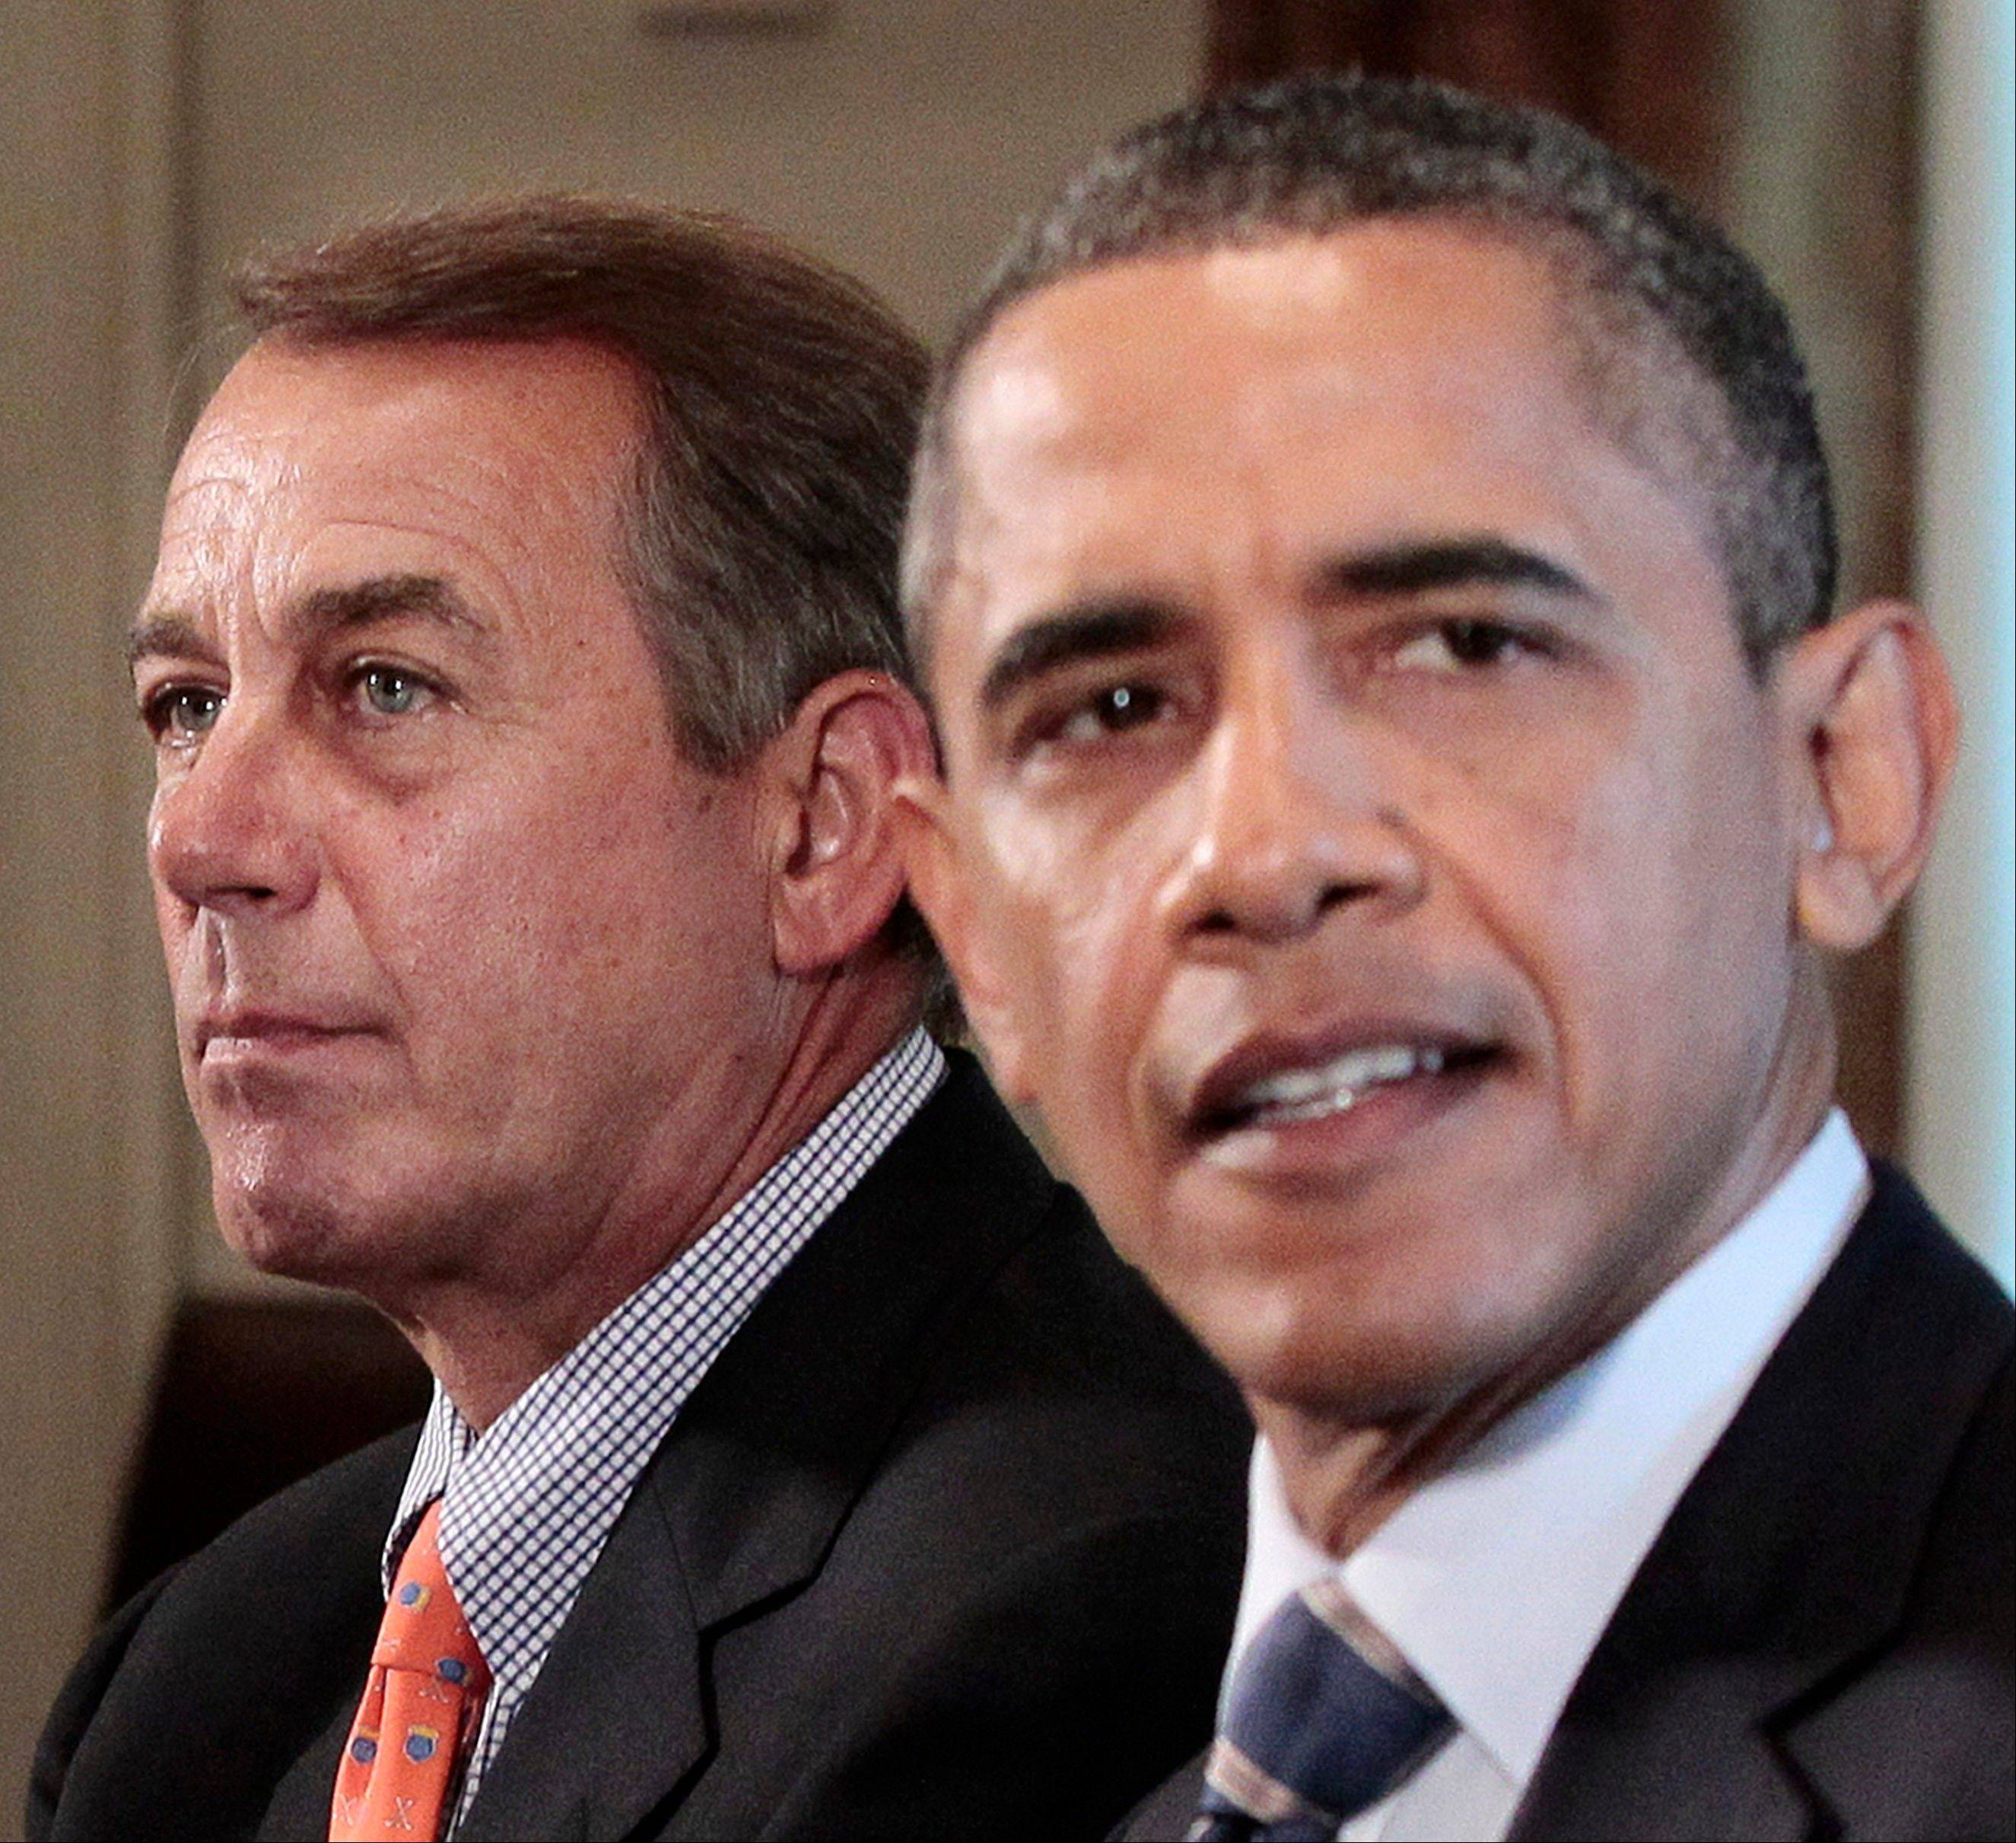 House Speaker John Boehner of Ohio listens as President Barack Obama speaks during a meeting with congressional leadership to discuss the debt Thursday at the White House.